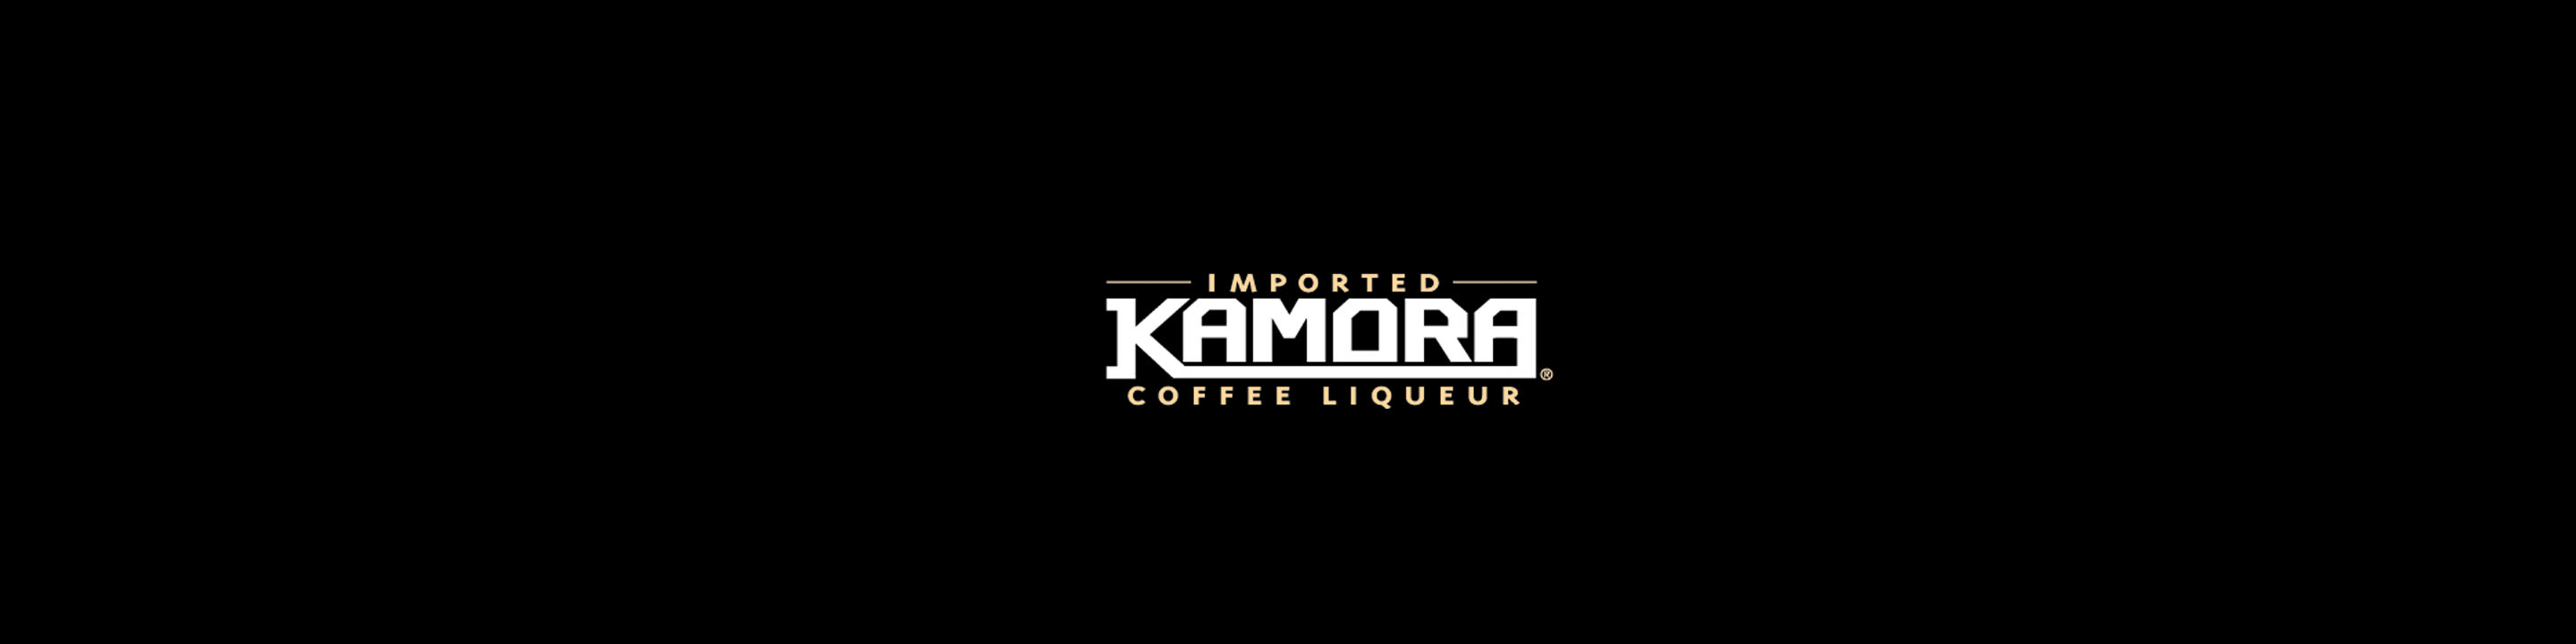 Wind down with true coffee liqueur.  Kamora® brings you the finest beans, roasted to perfection, blended to a satiny smooth decadence with vanilla, chocolate and caramel notes. In a cocktail, in coffee or alone on ice, Kamora® is just right, anytime.  Buy Kamora online now from nearby liquor stores via Minibar Delivery.